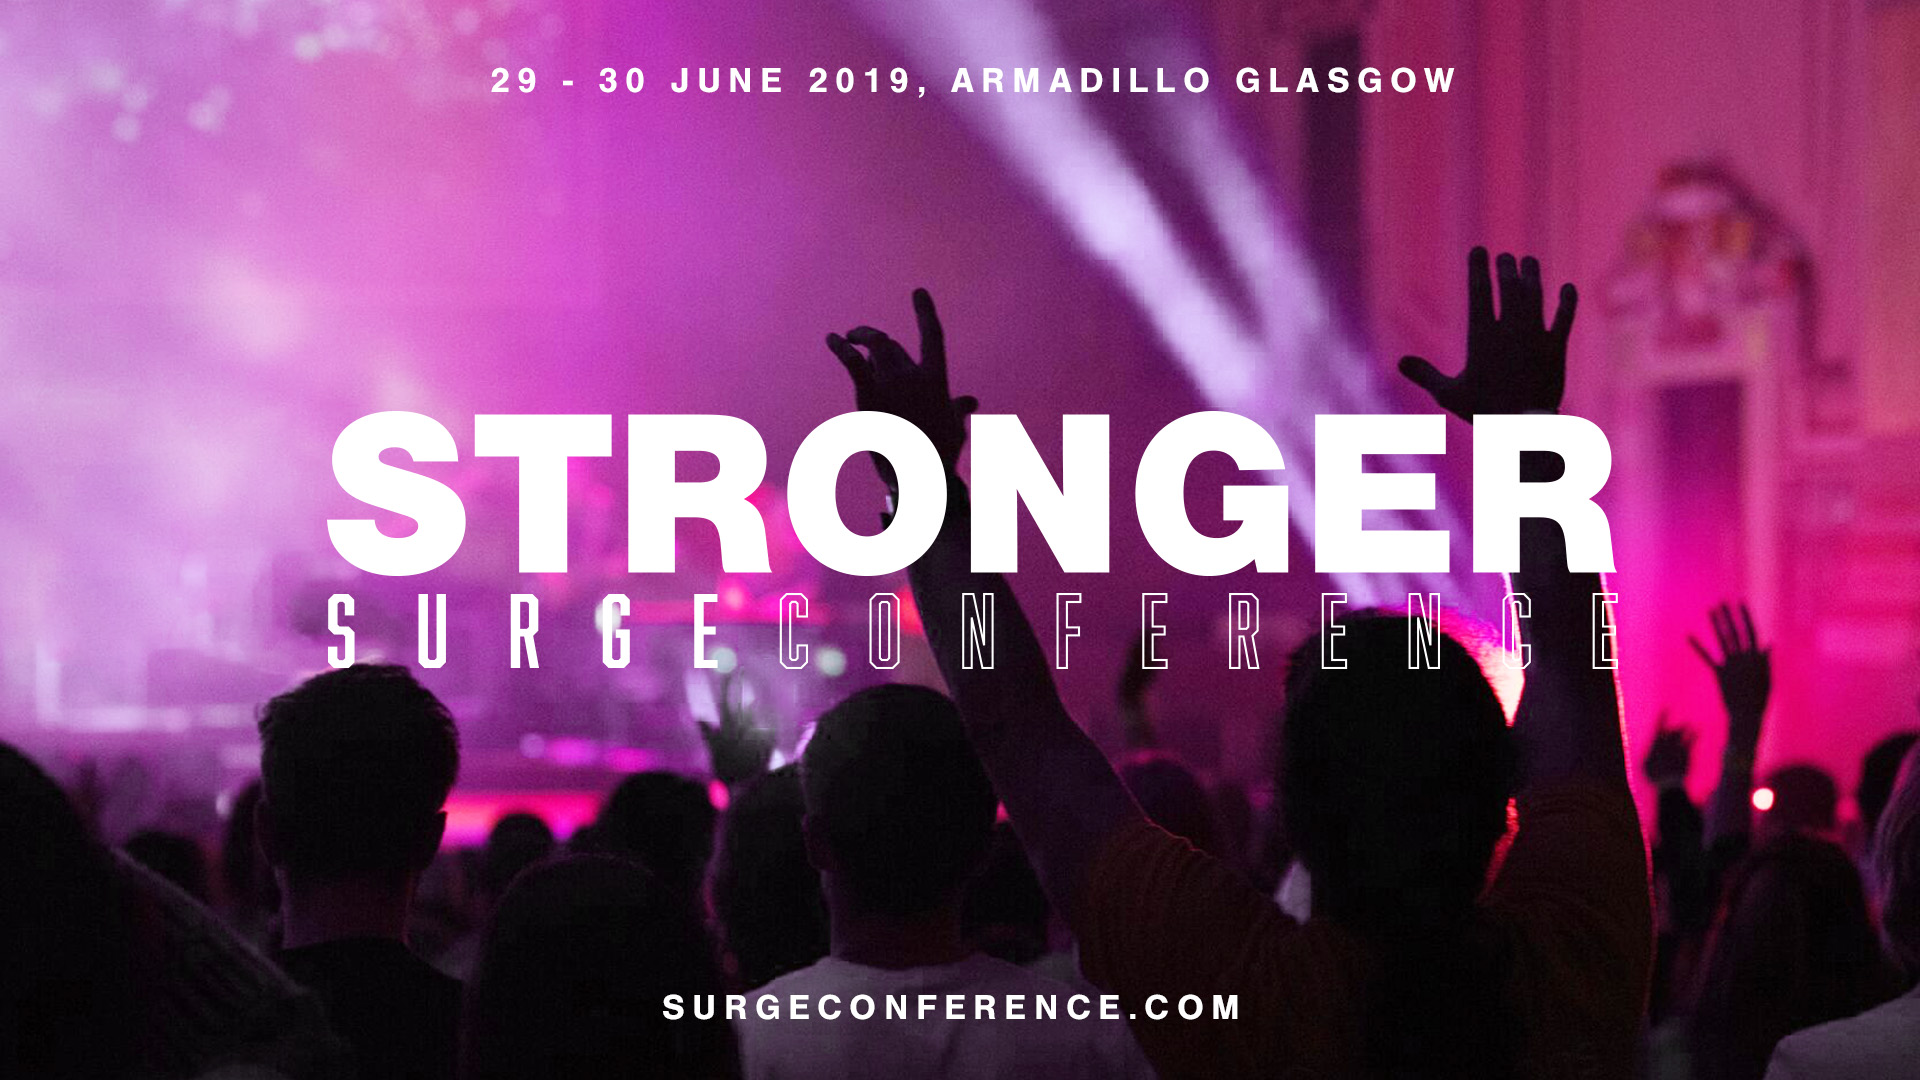 Surge Conference 2019 - Destiny Church Glasgow